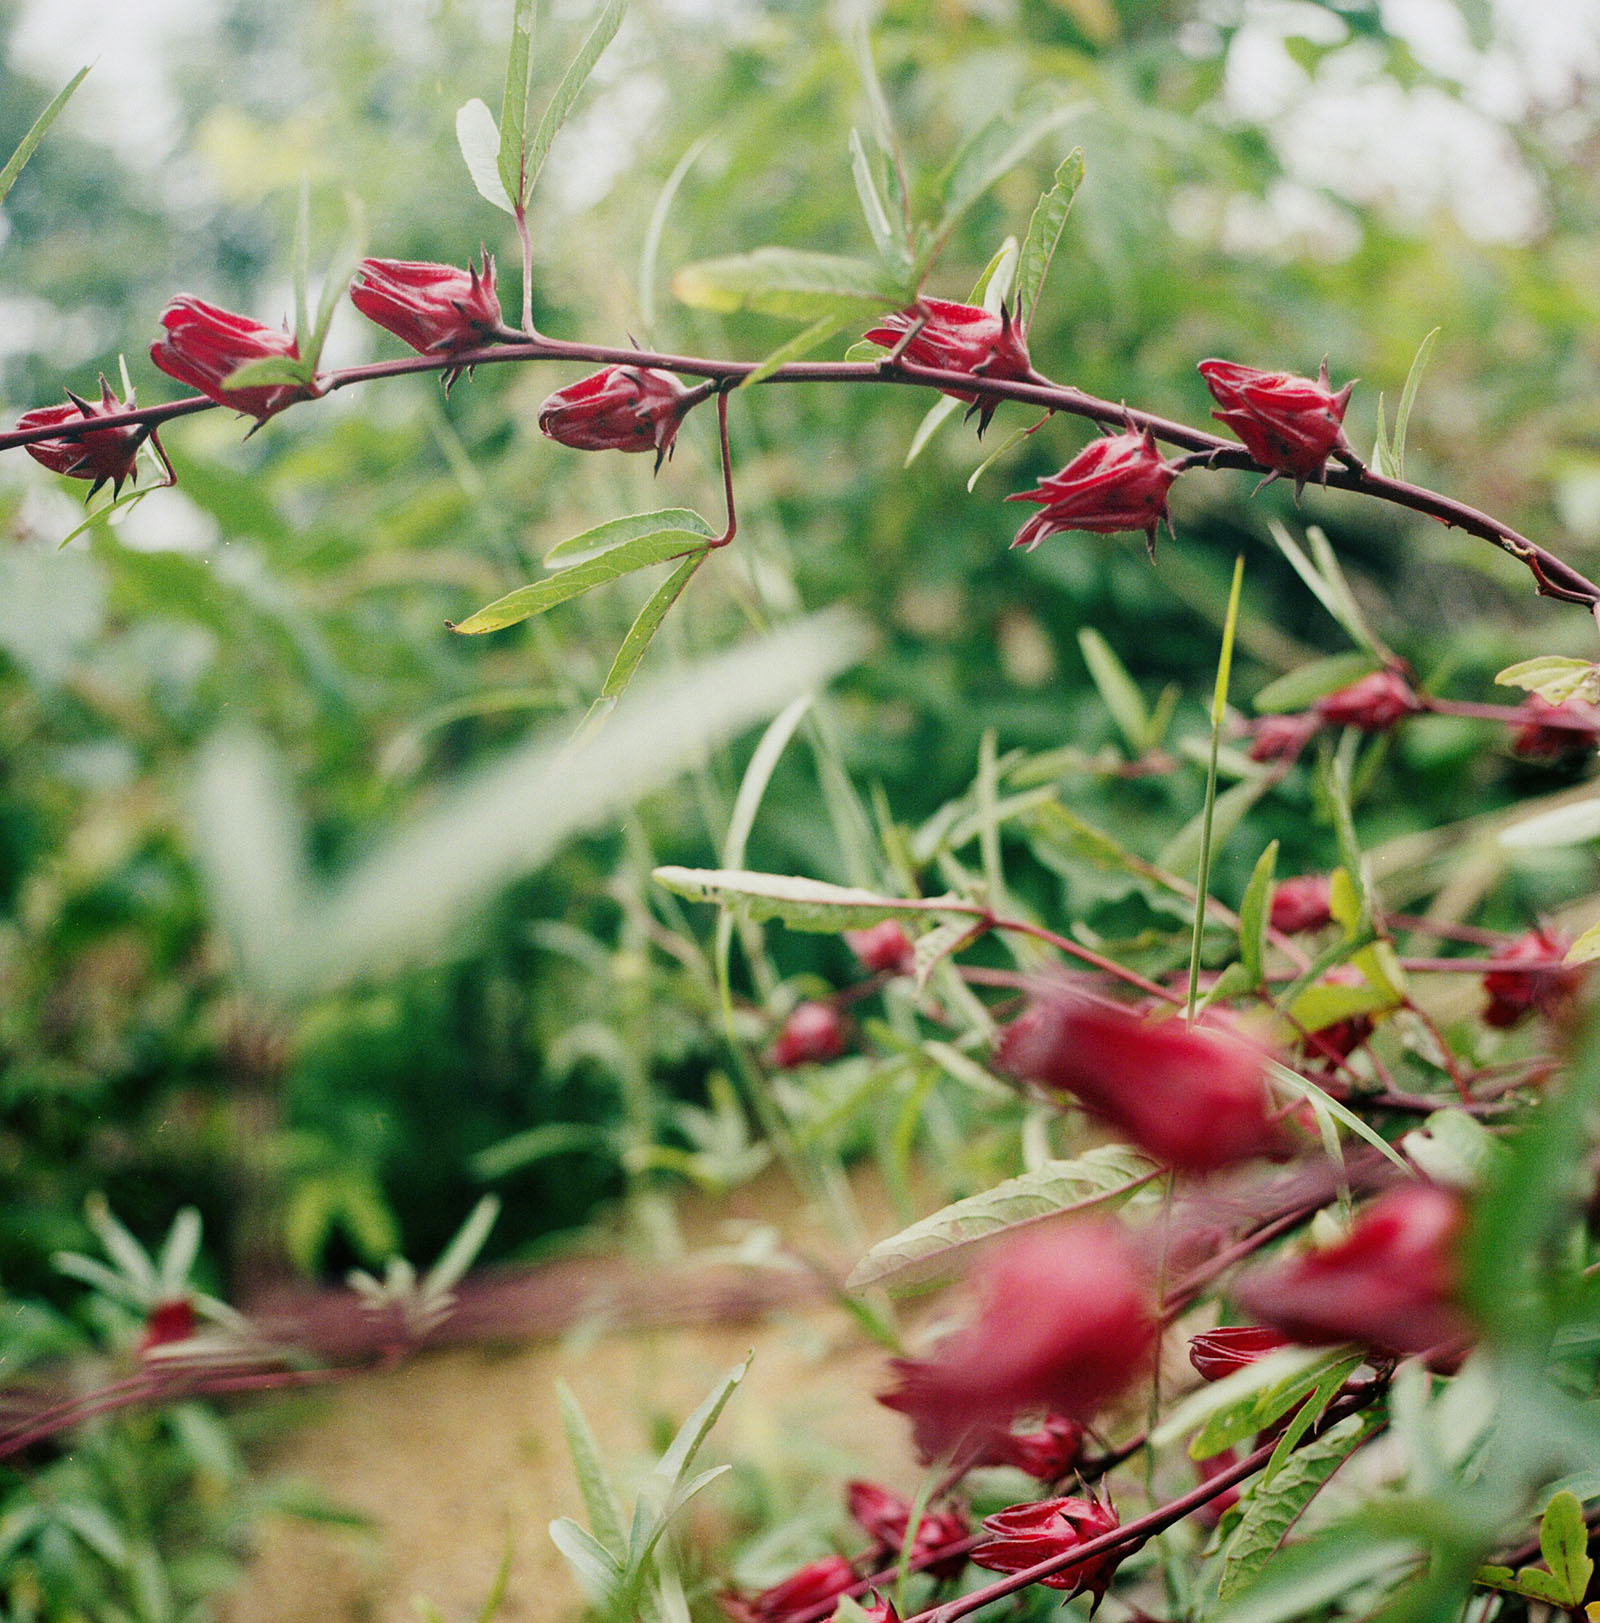 Roselle flowers at the Farmer's Land Crack in Pai | Thailand Travel Photos